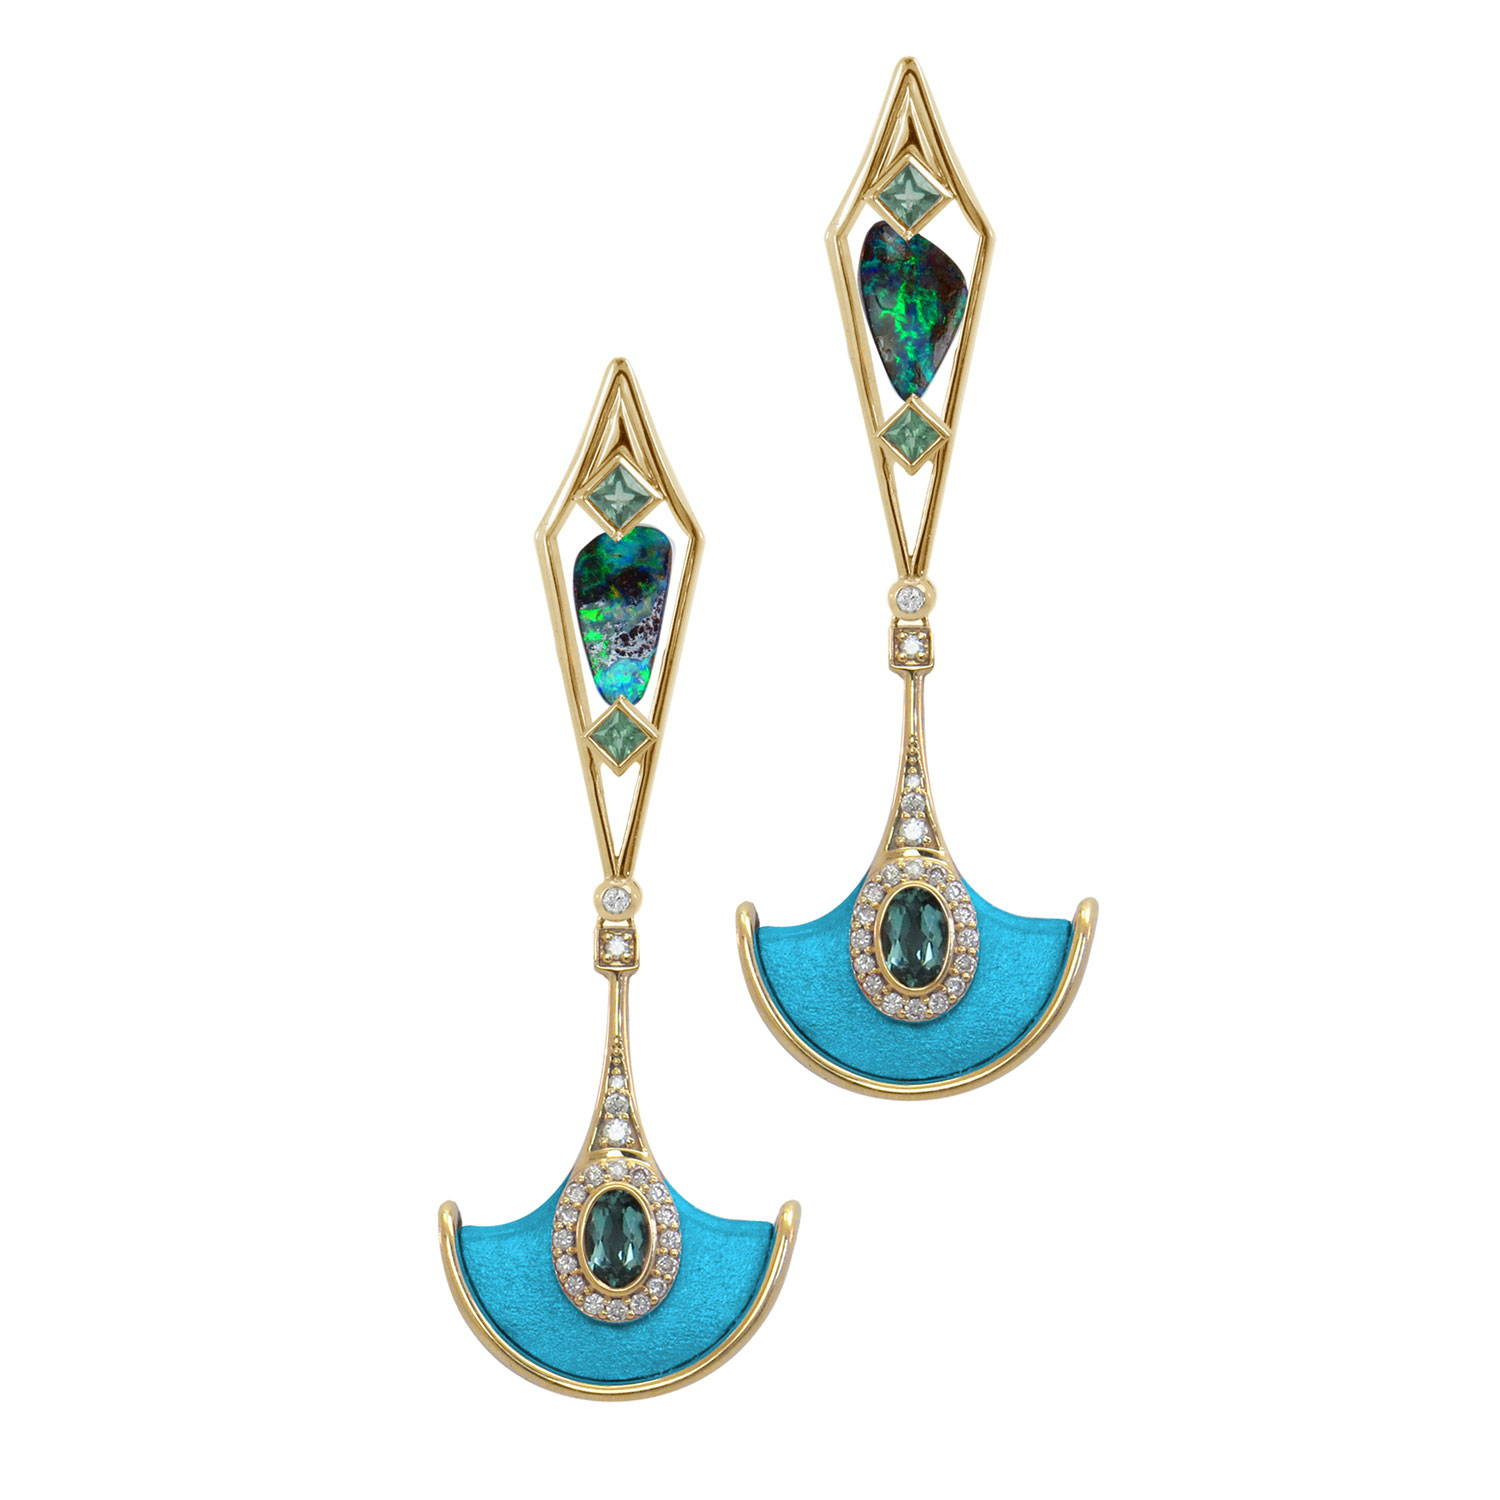 Blue and Turquoise Statement earrings with the Gemstone Boulder Opal, diamonds and sage-coloured tourmaline. By K8 Jewelry Concepts Bijoux made in Montreal.